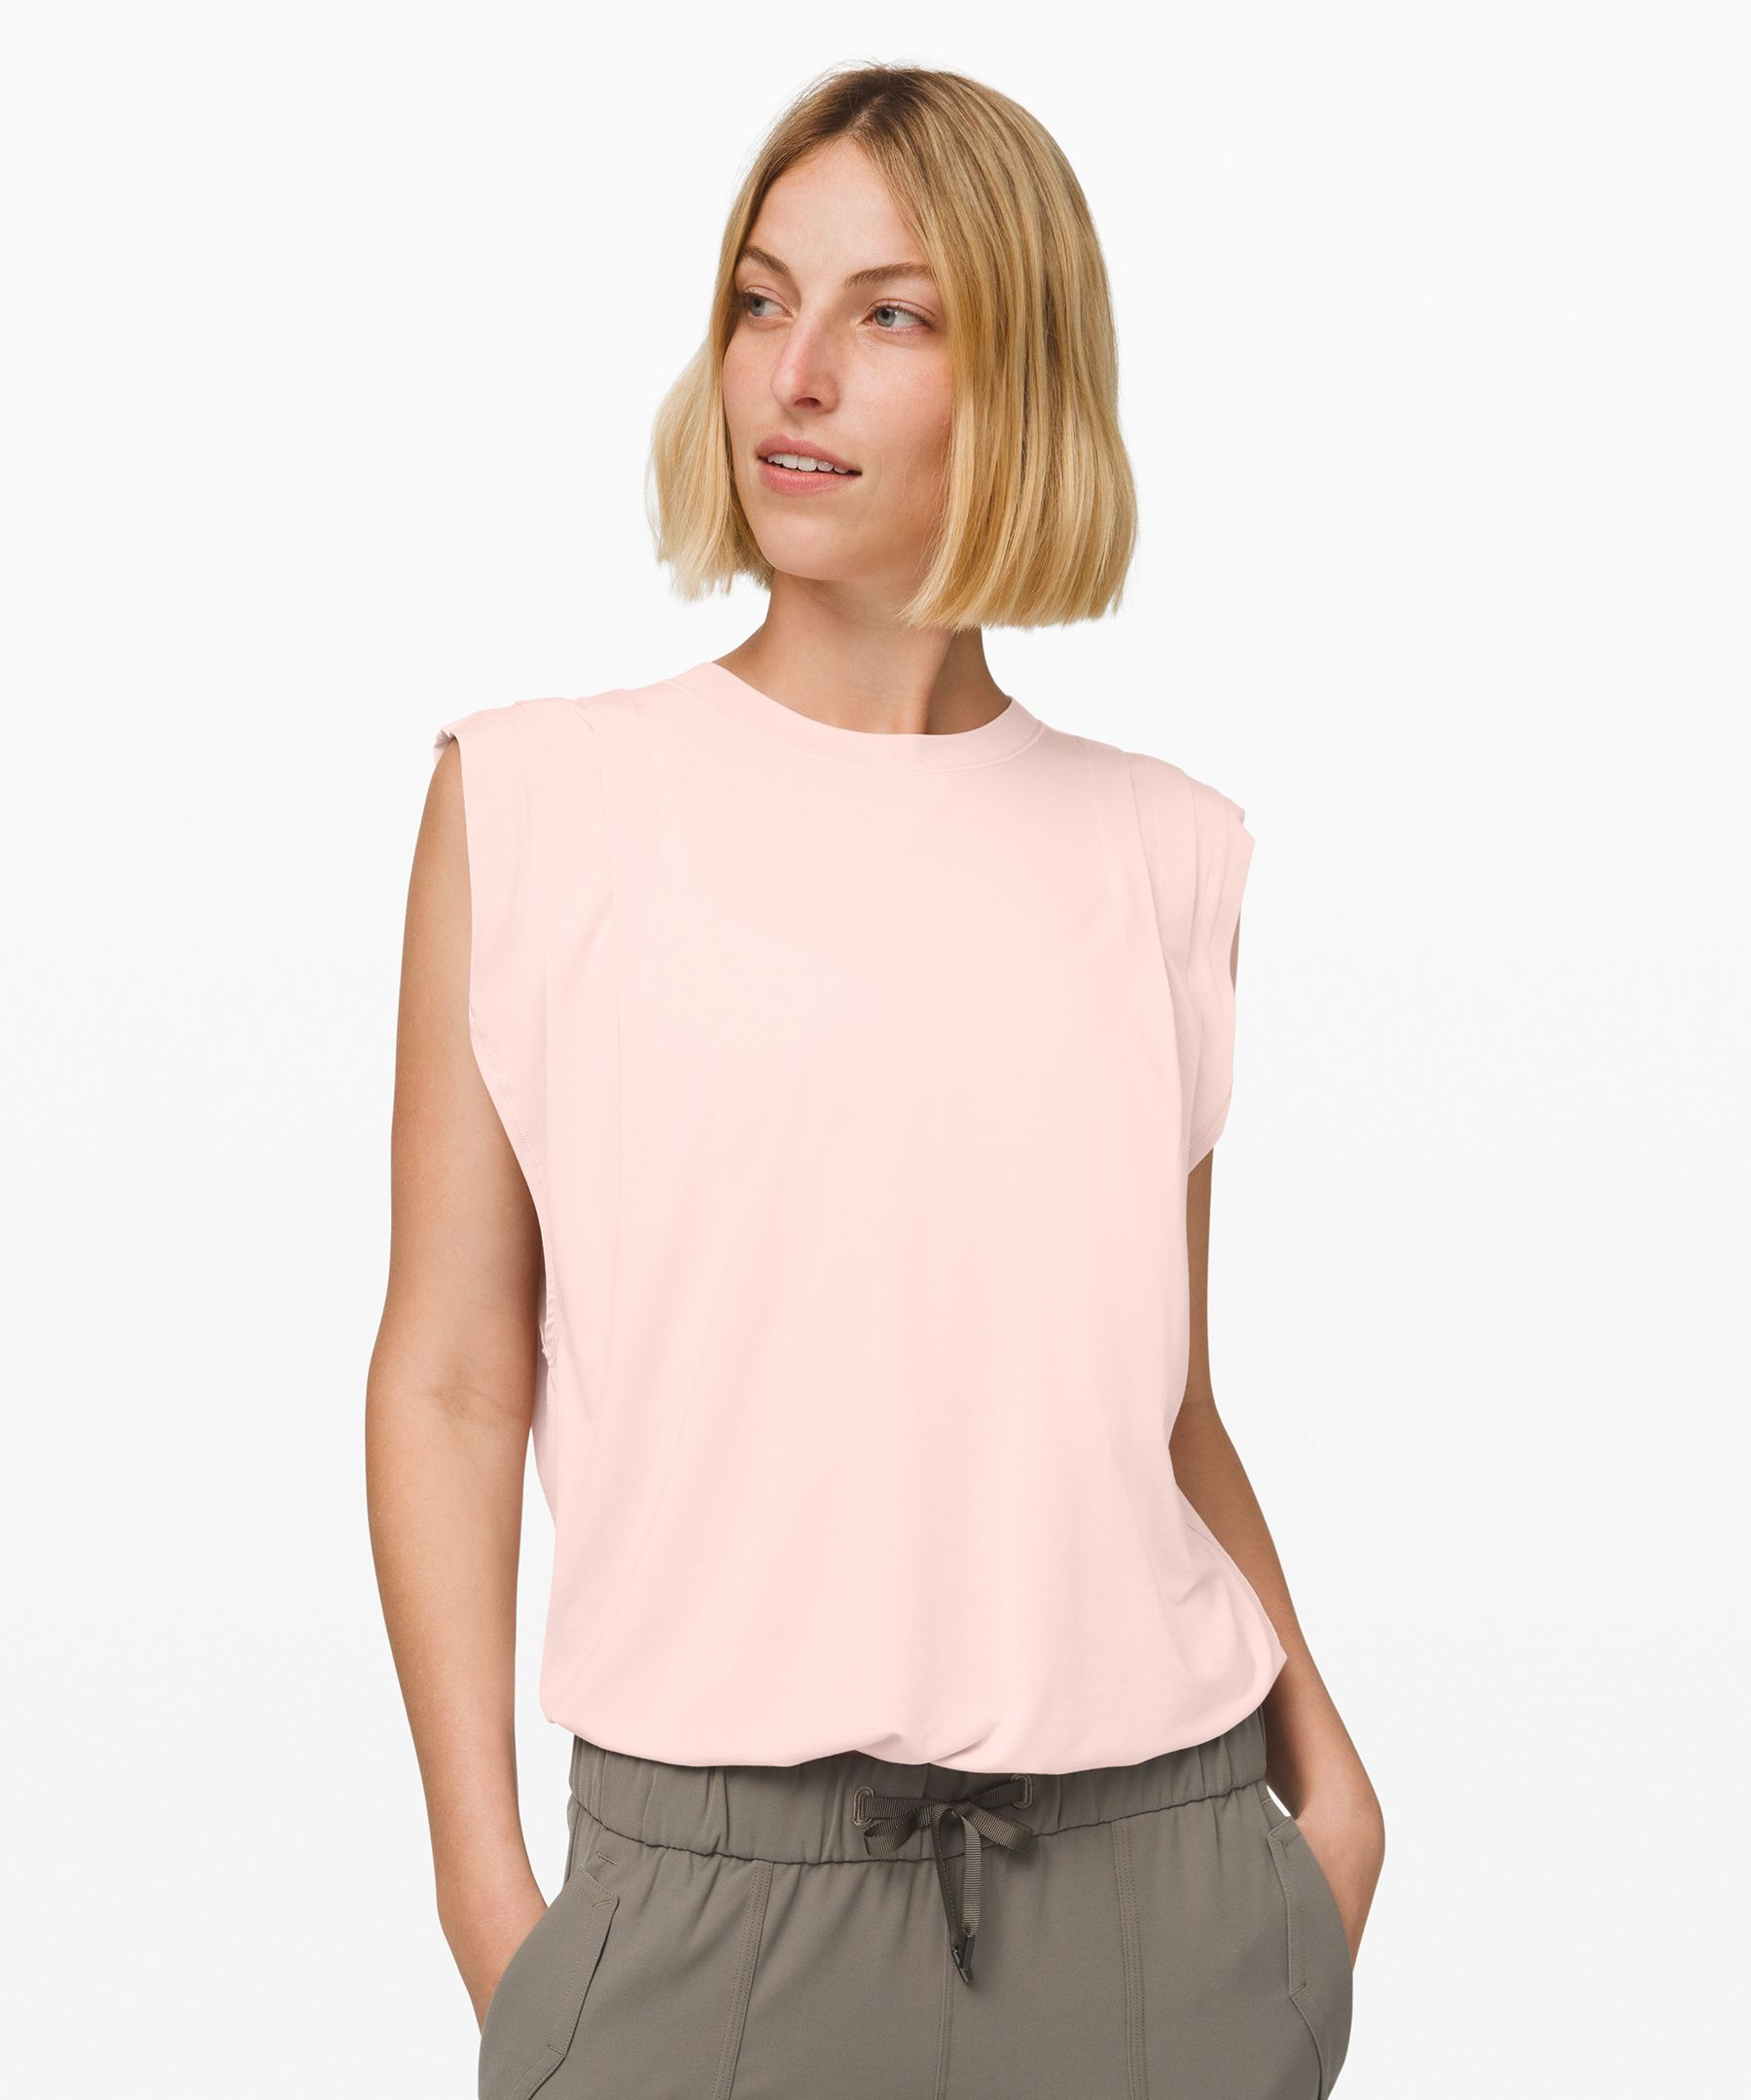 Lululemon Hour To Hour Bodysuit In Pink Bliss